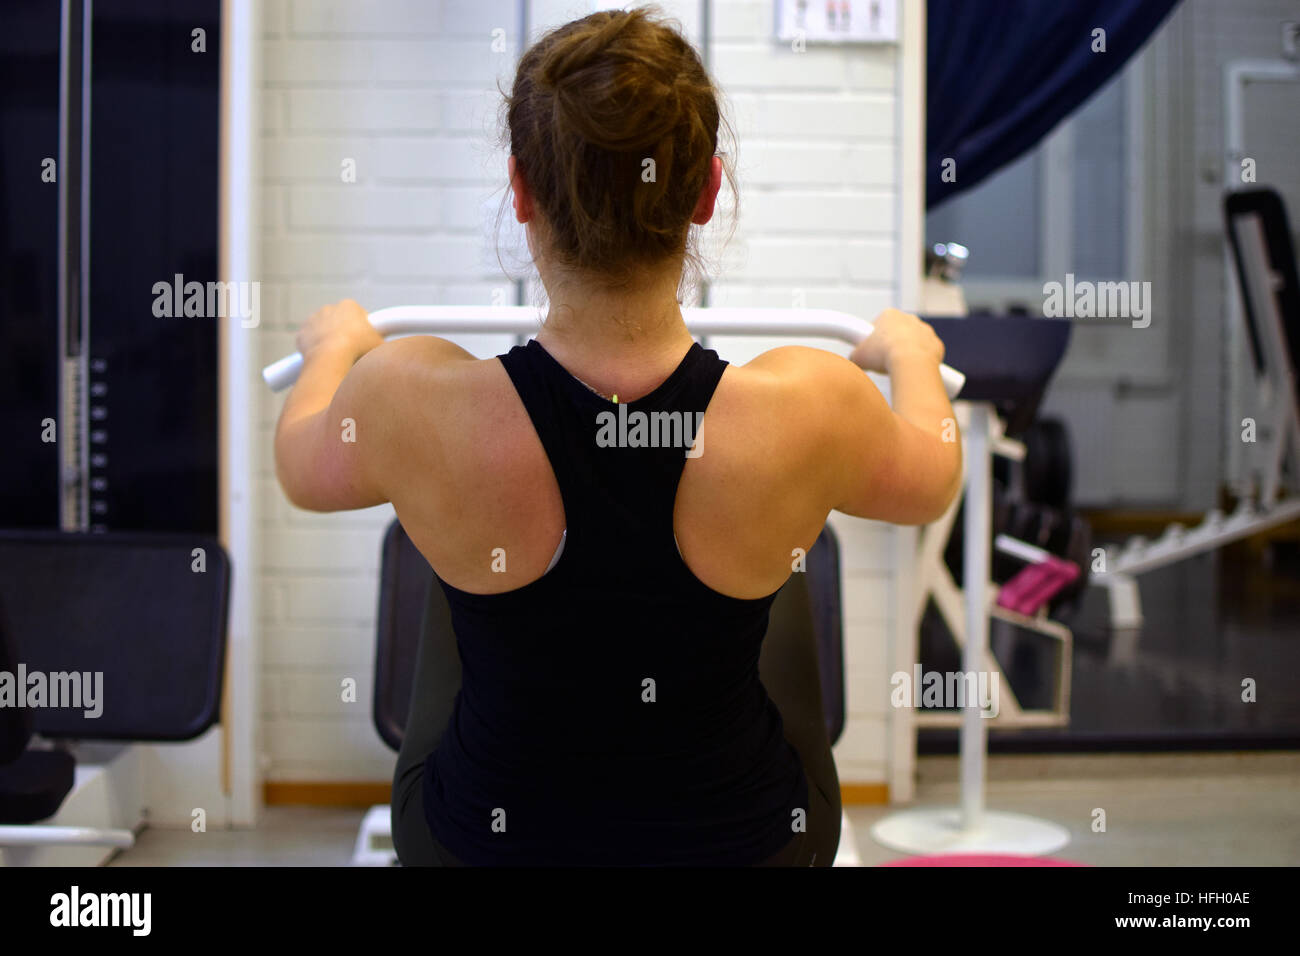 Back Muscles Muscular Woman Imágenes De Stock & Back Muscles ...